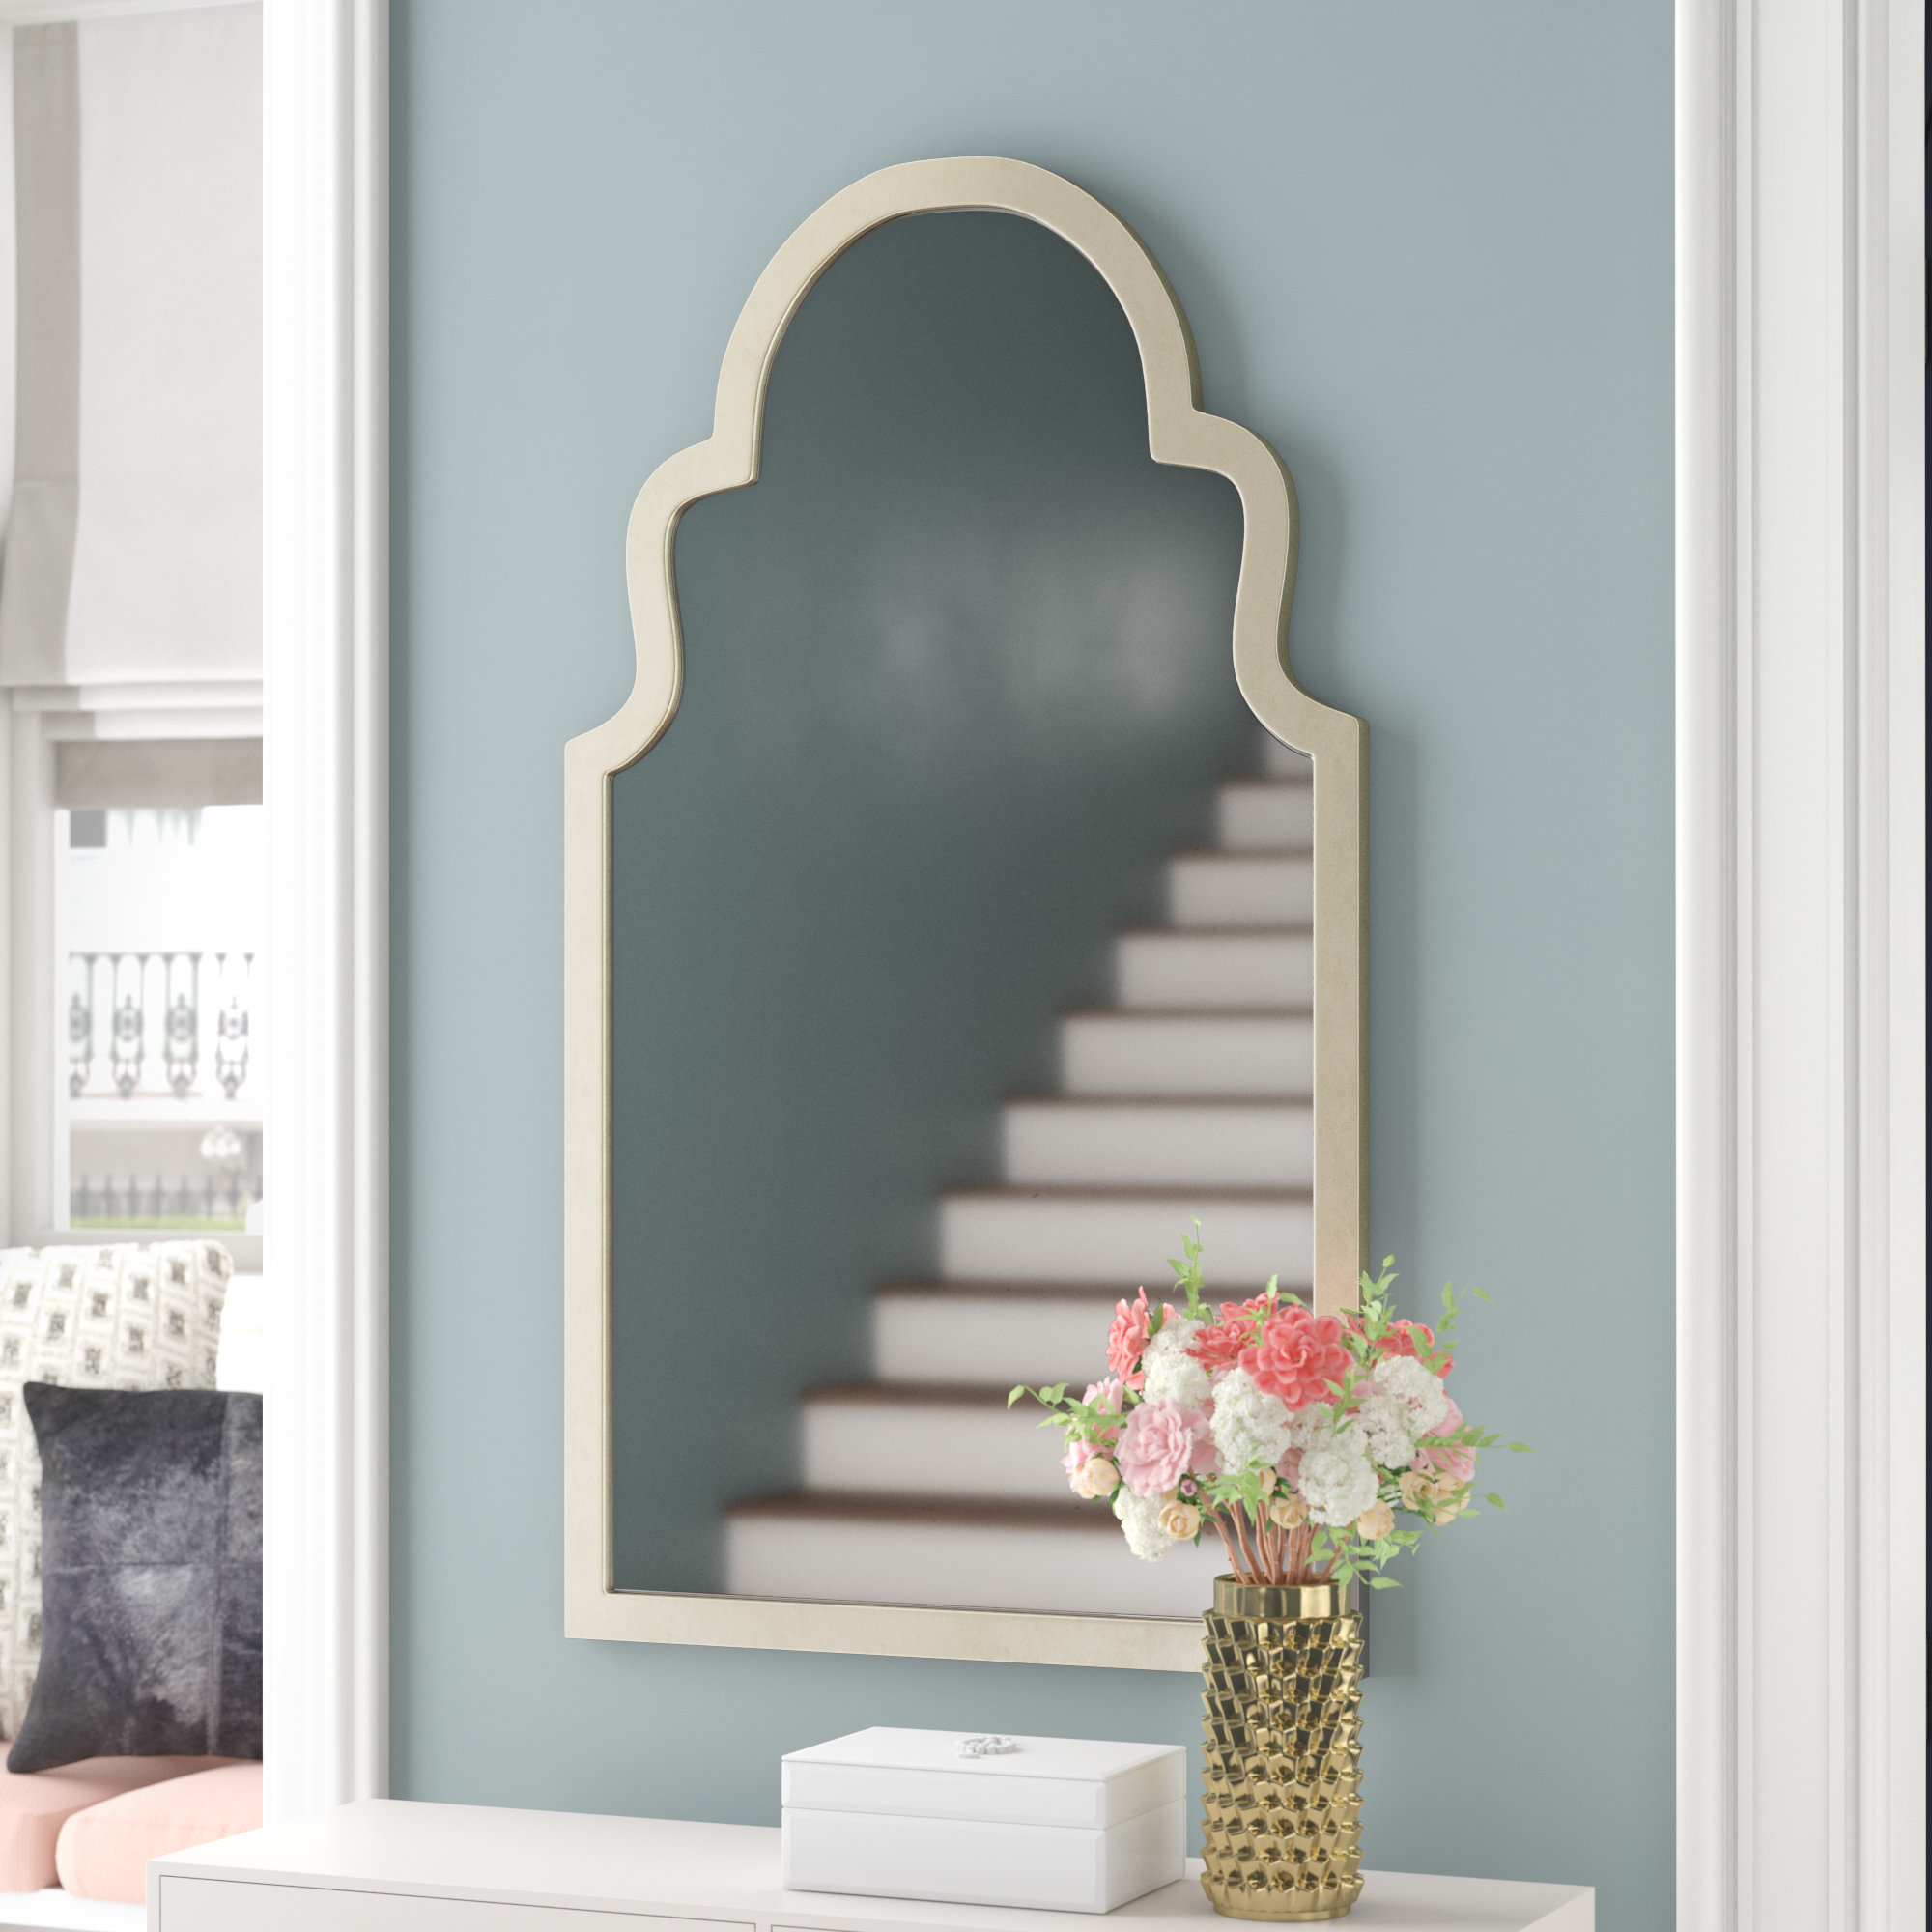 Widely Used Arch Top Vertical Wall Mirror Throughout Arch Top Vertical Wall Mirrors (View 20 of 20)